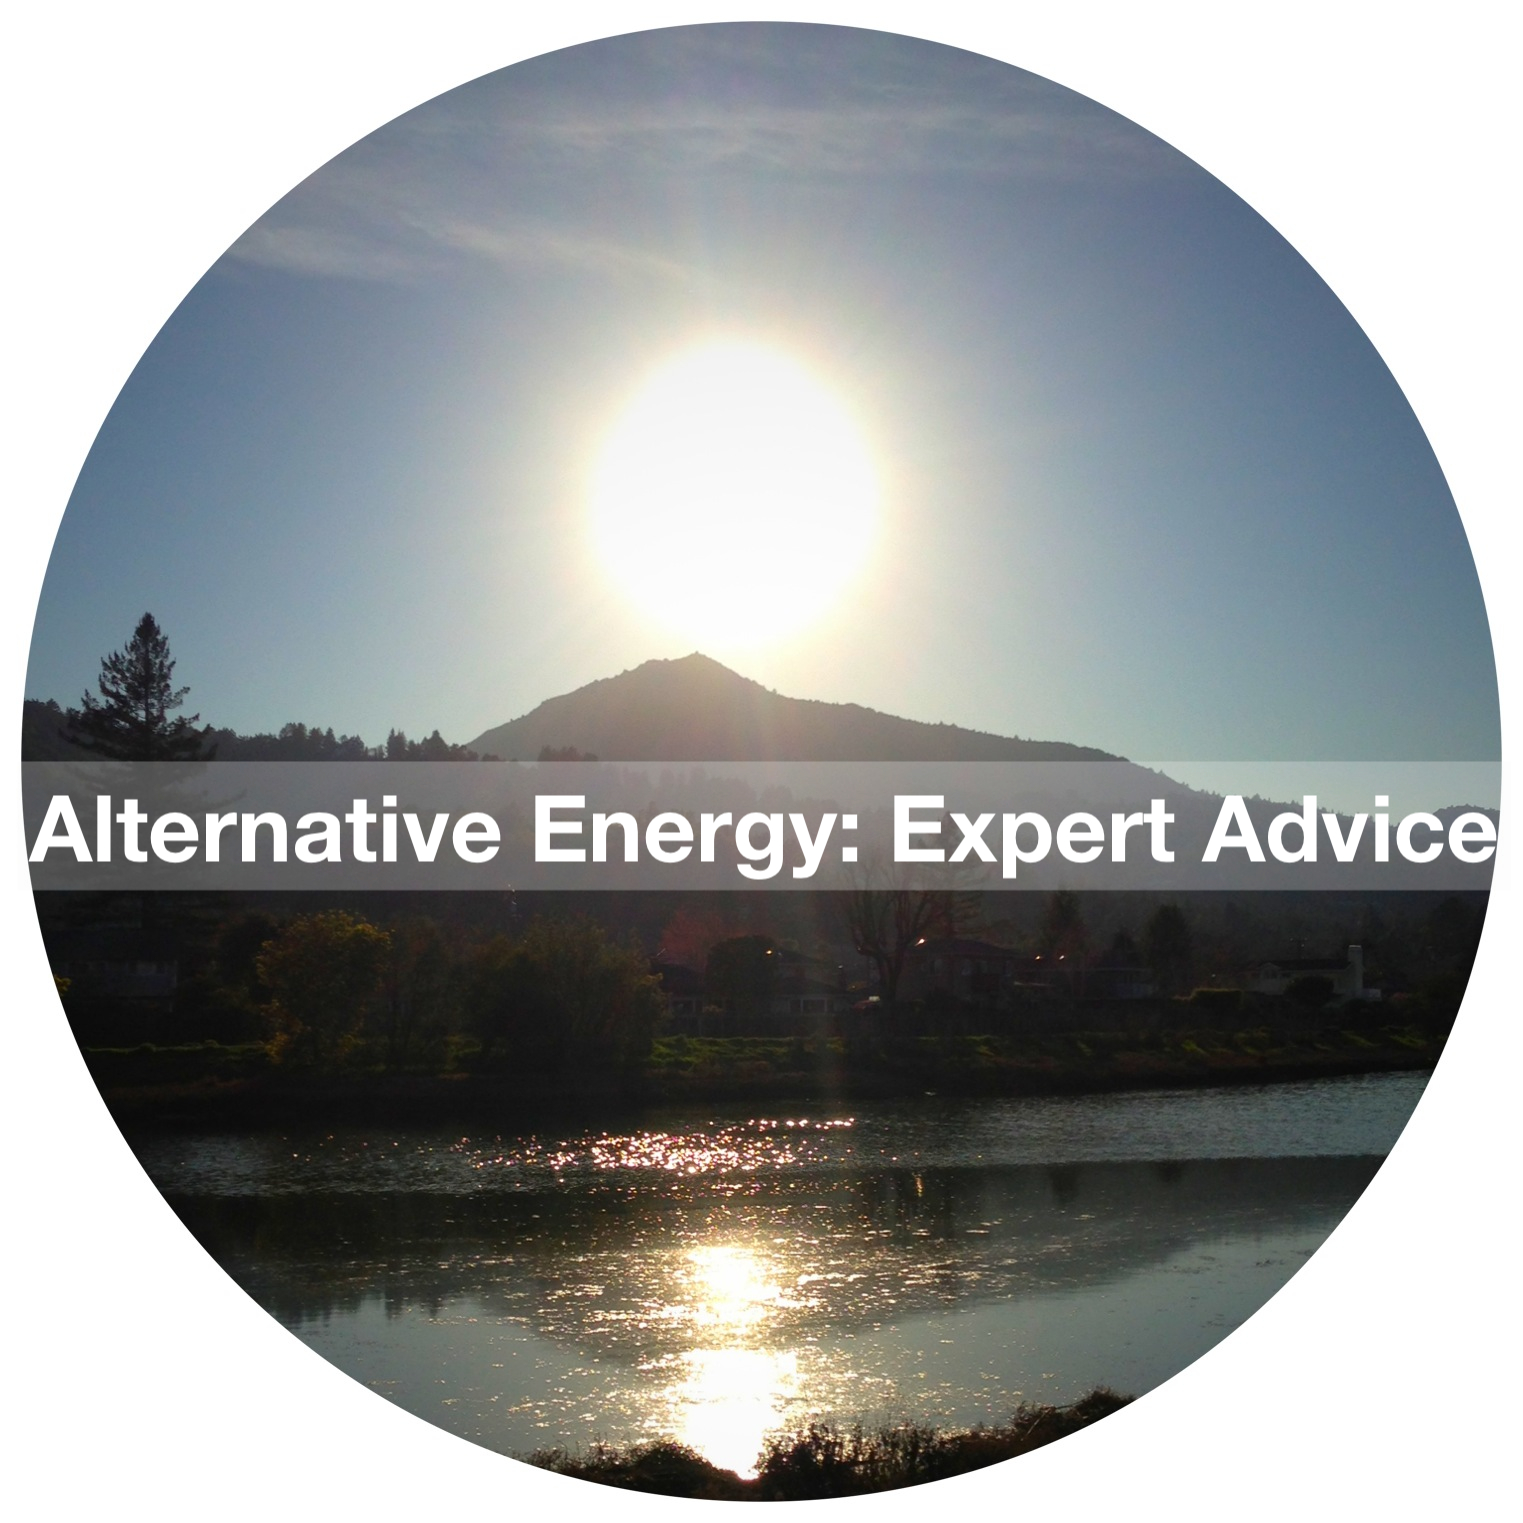 alternative energy: ask the experts